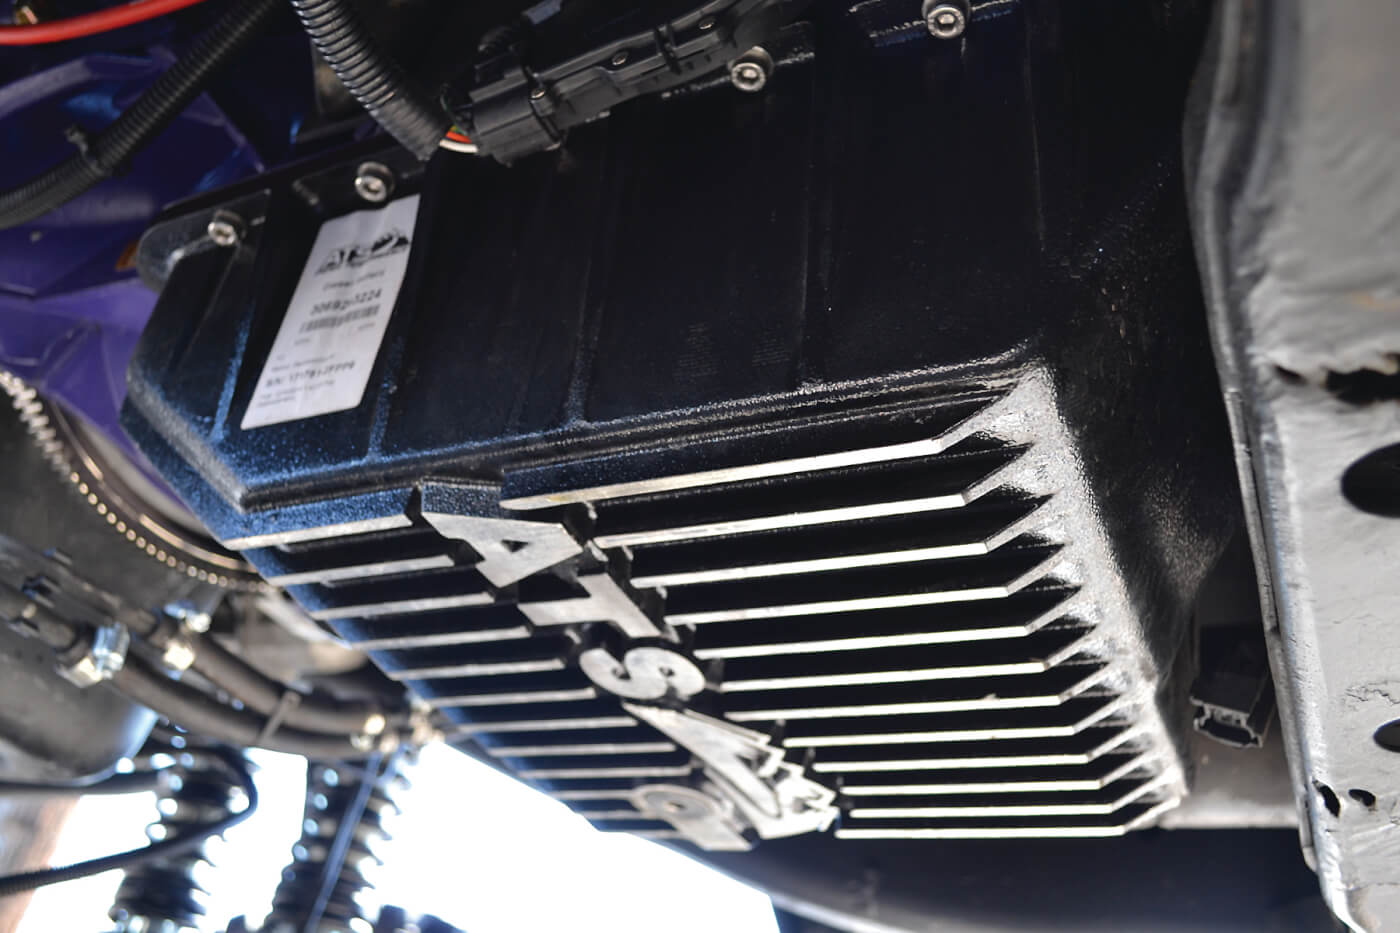 Looking under the truck, we spotted one of the coolest new products available from ATS